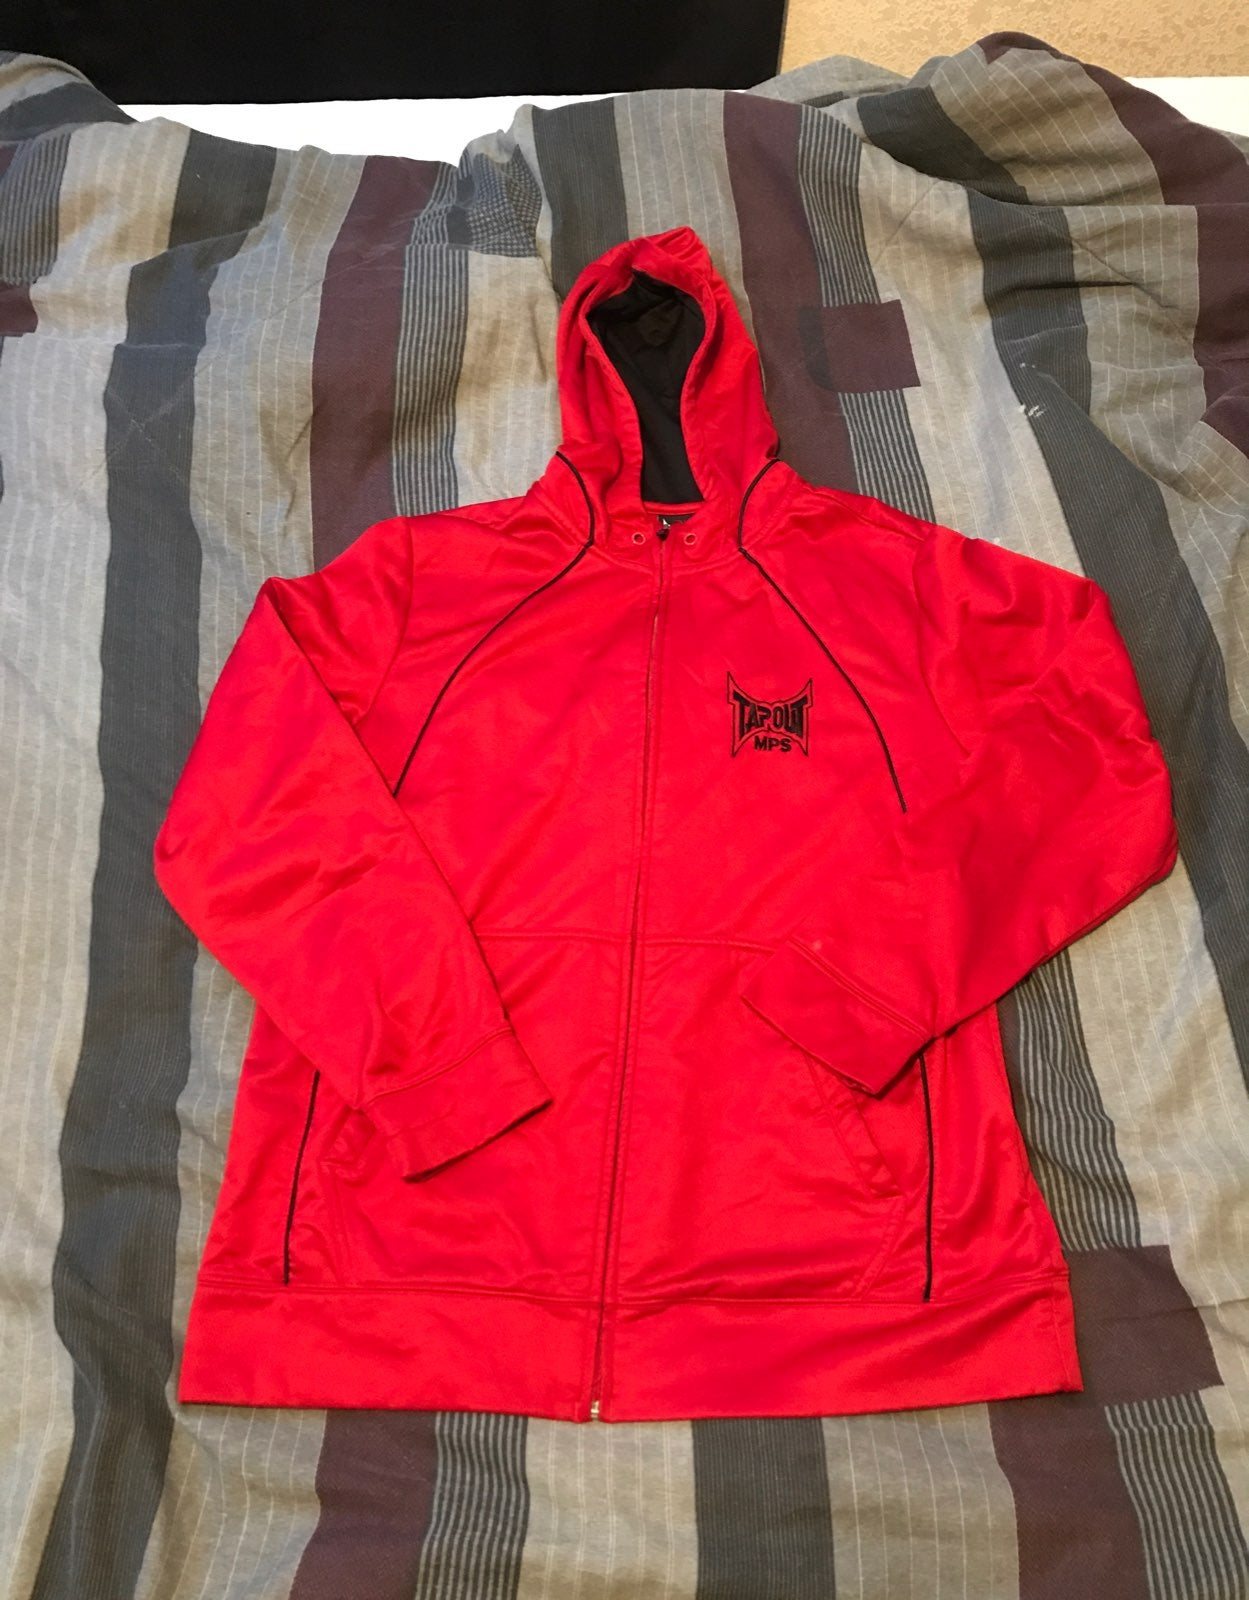 Tapout Jacket